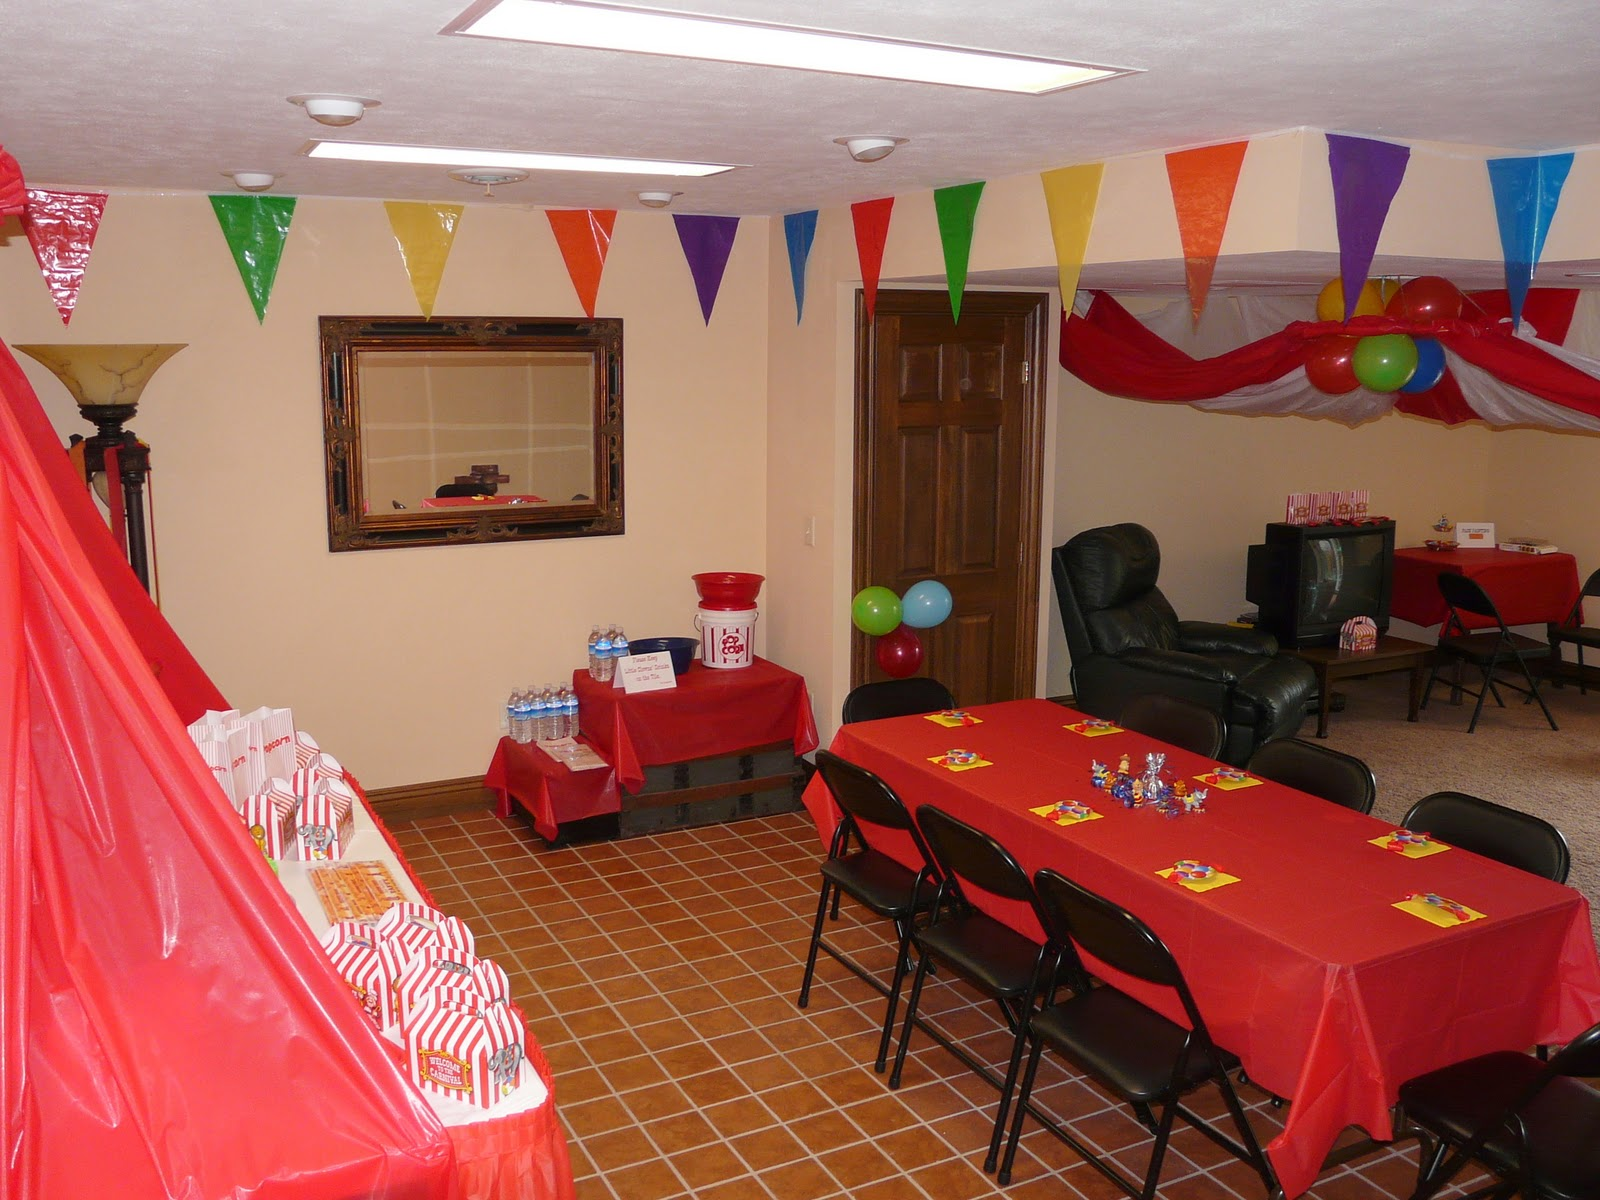 A circus birthday party part one decorations for Decoration ideas